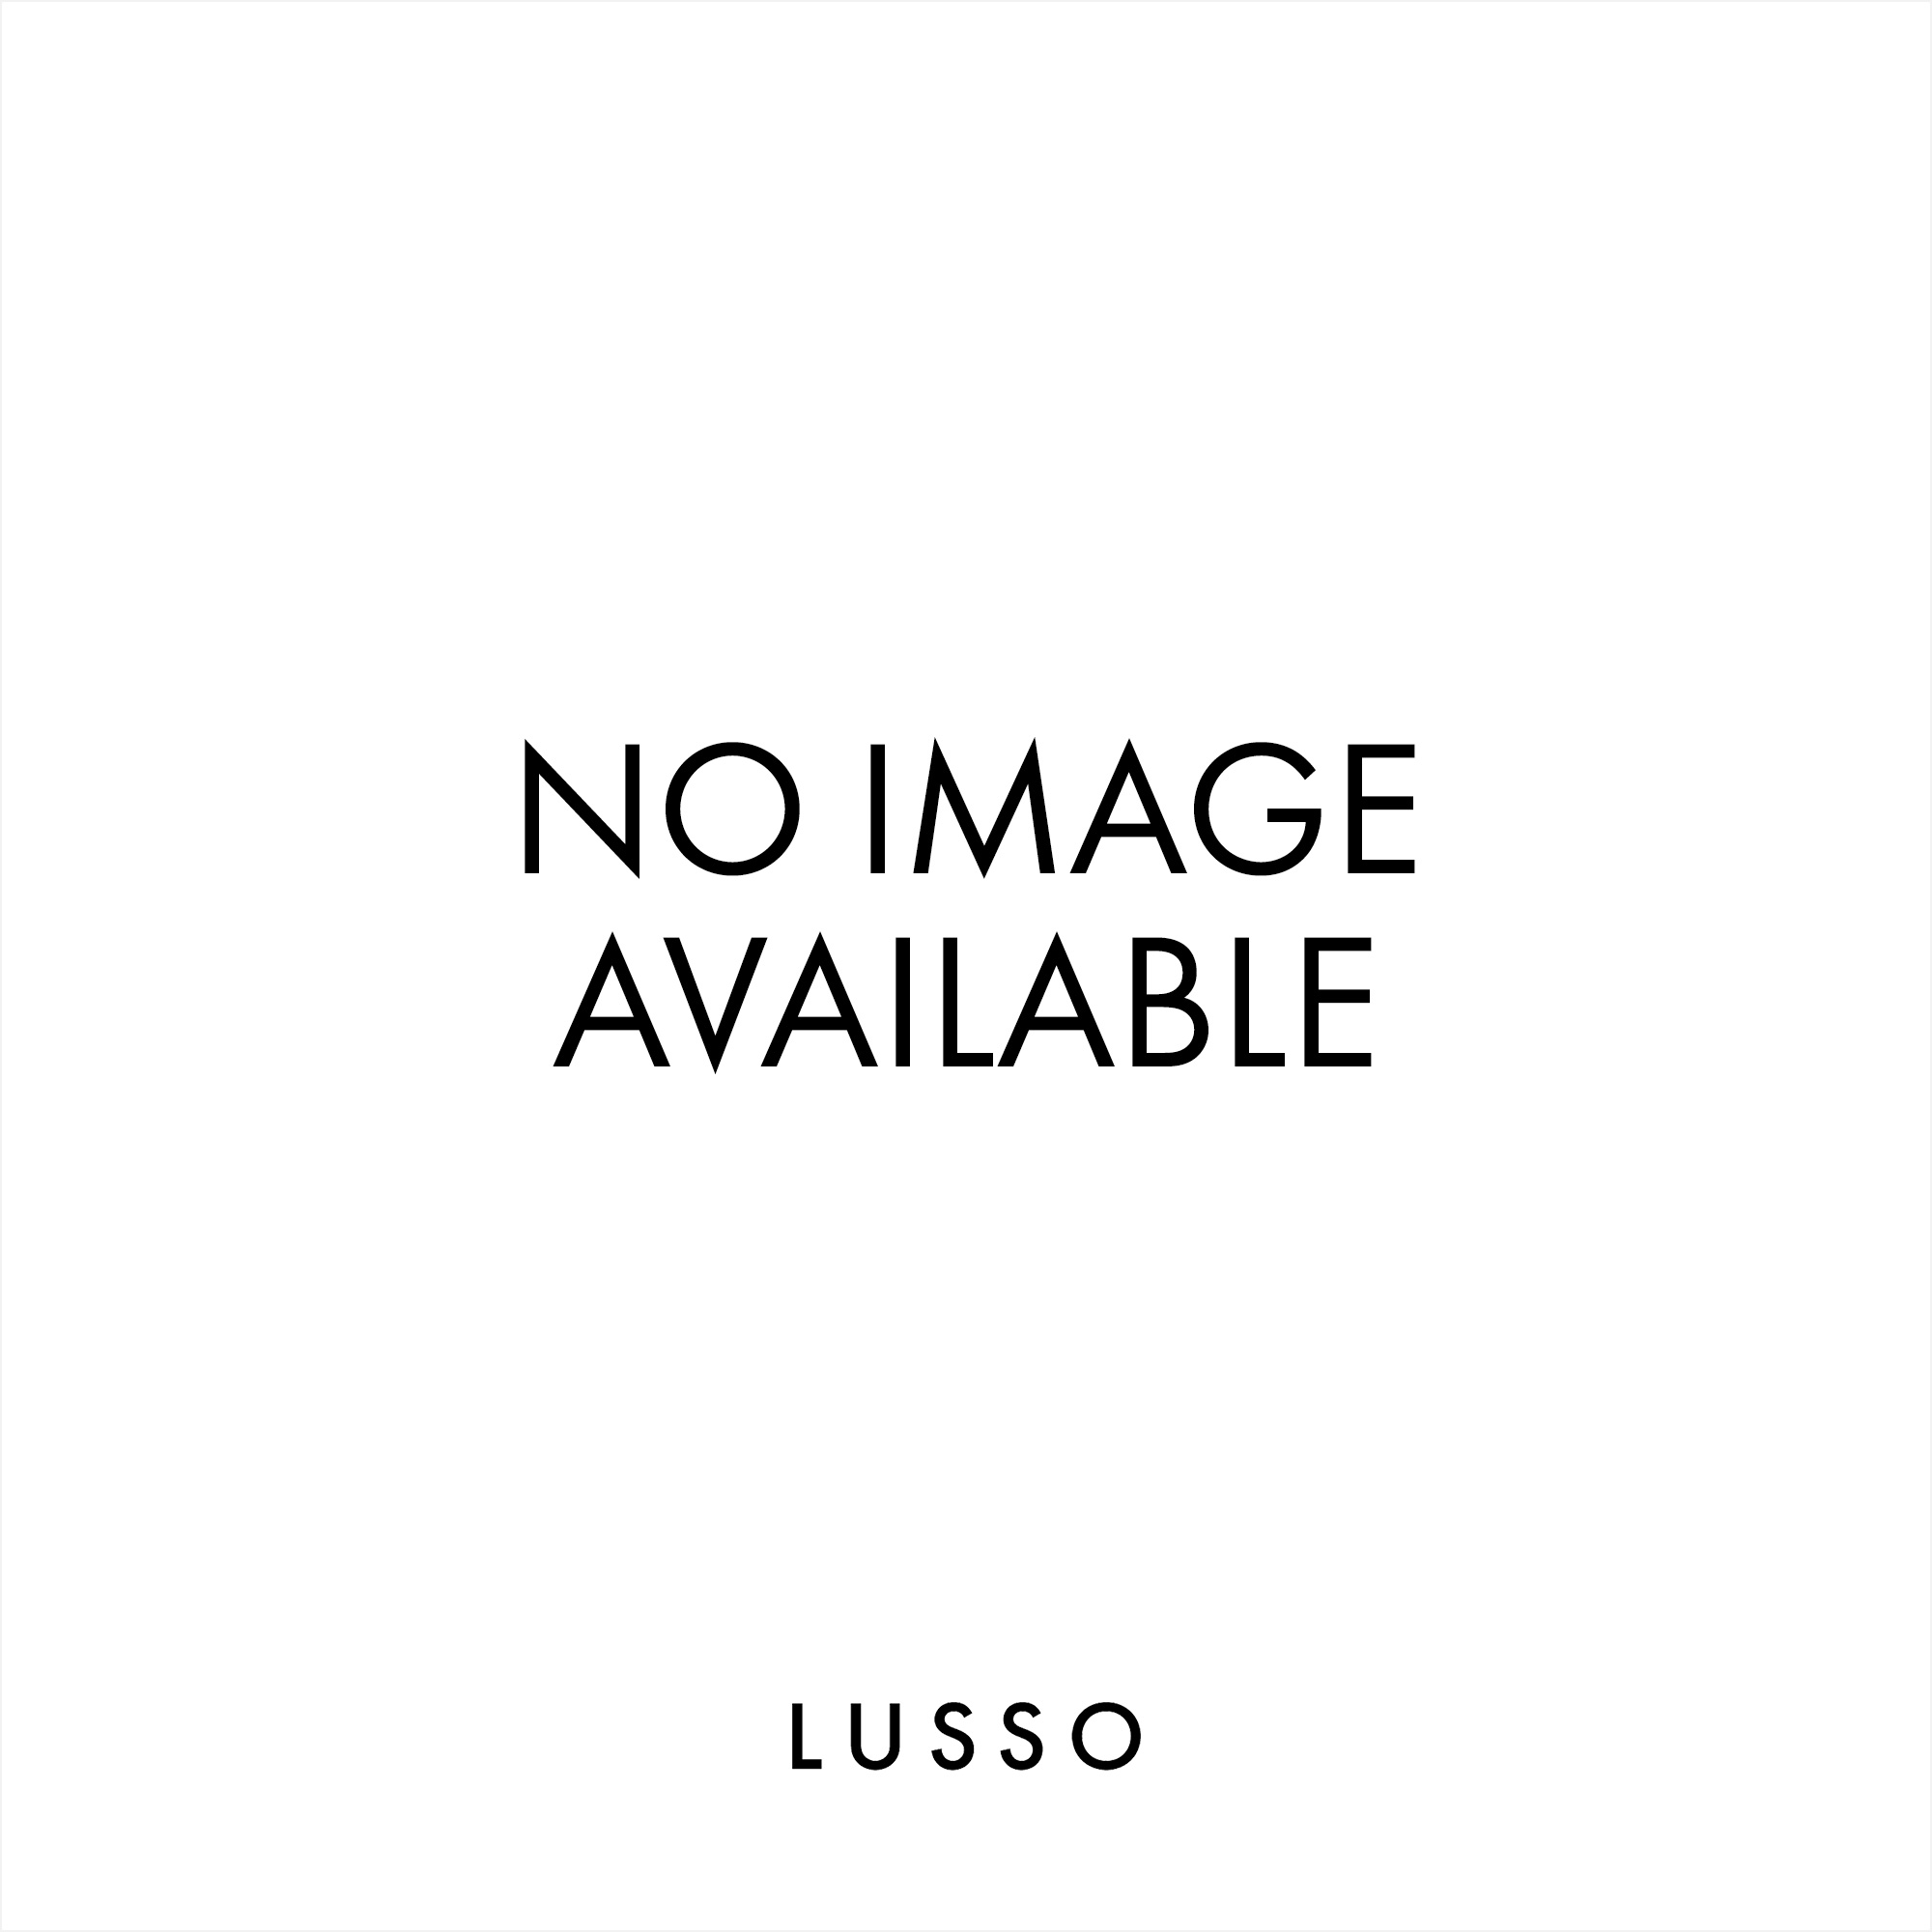 Lusso Stone Solid surface stone resin mirror matte finish 1200 square